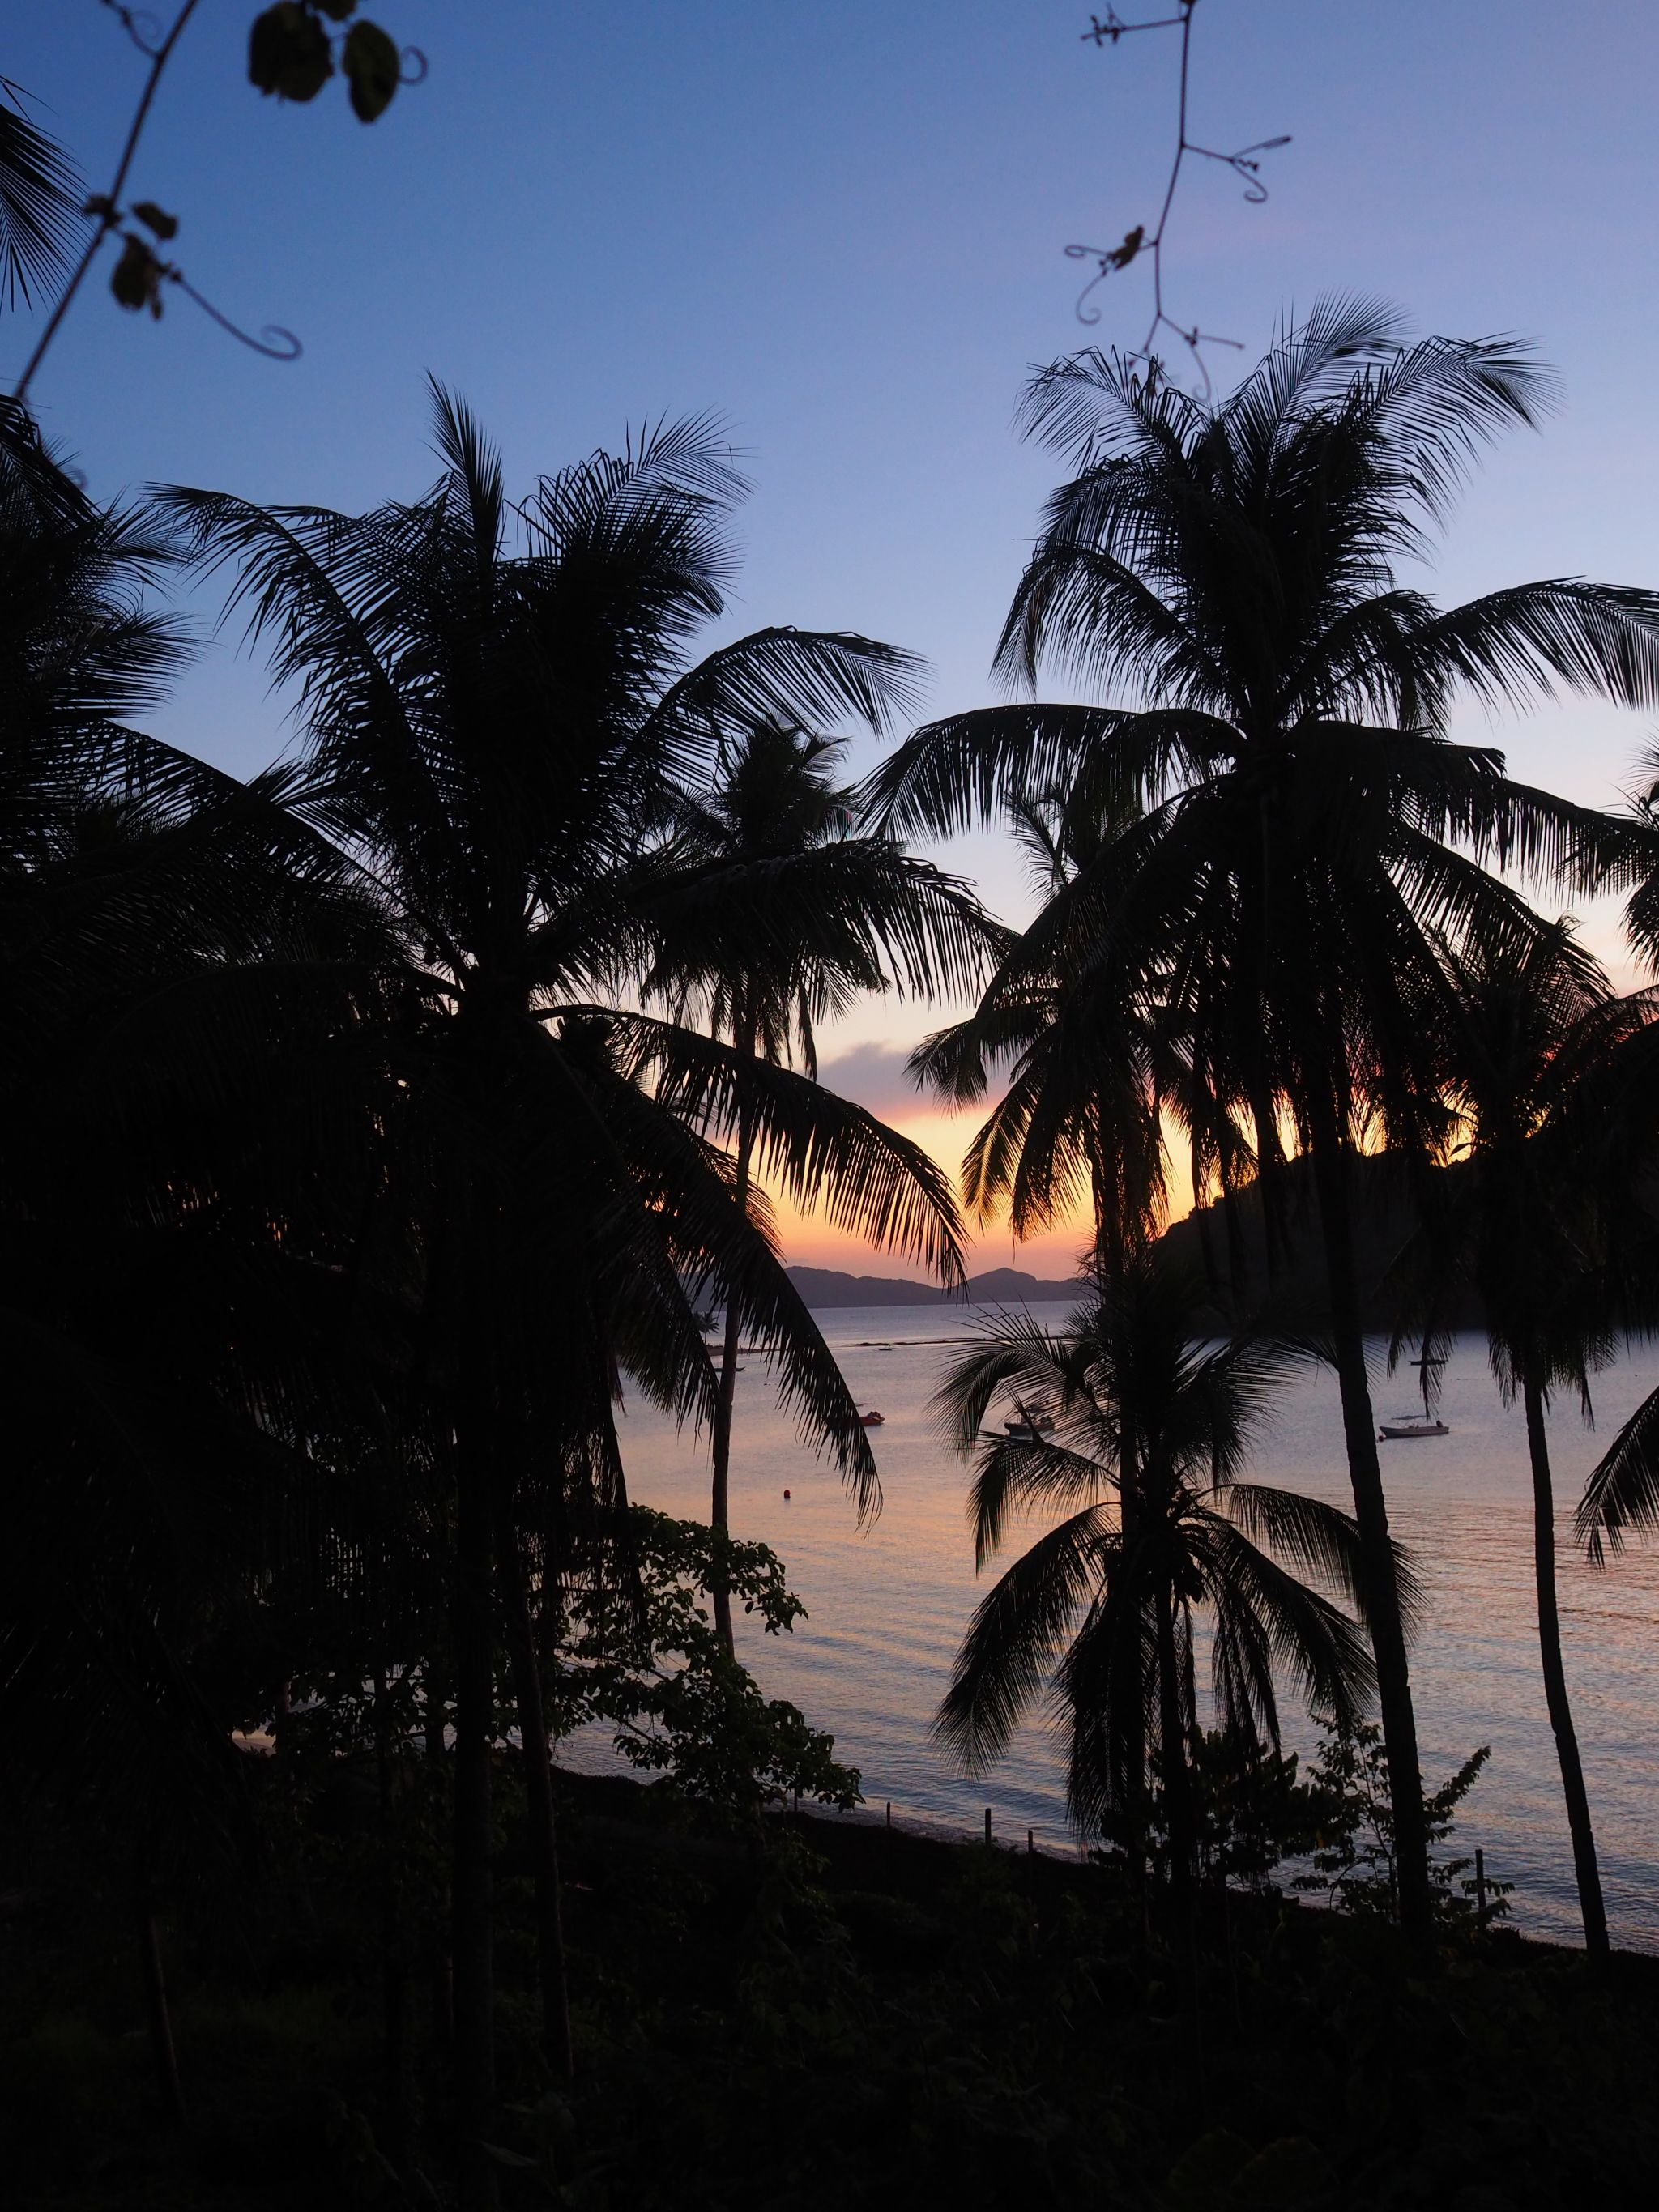 Philippines sunset with palm trees